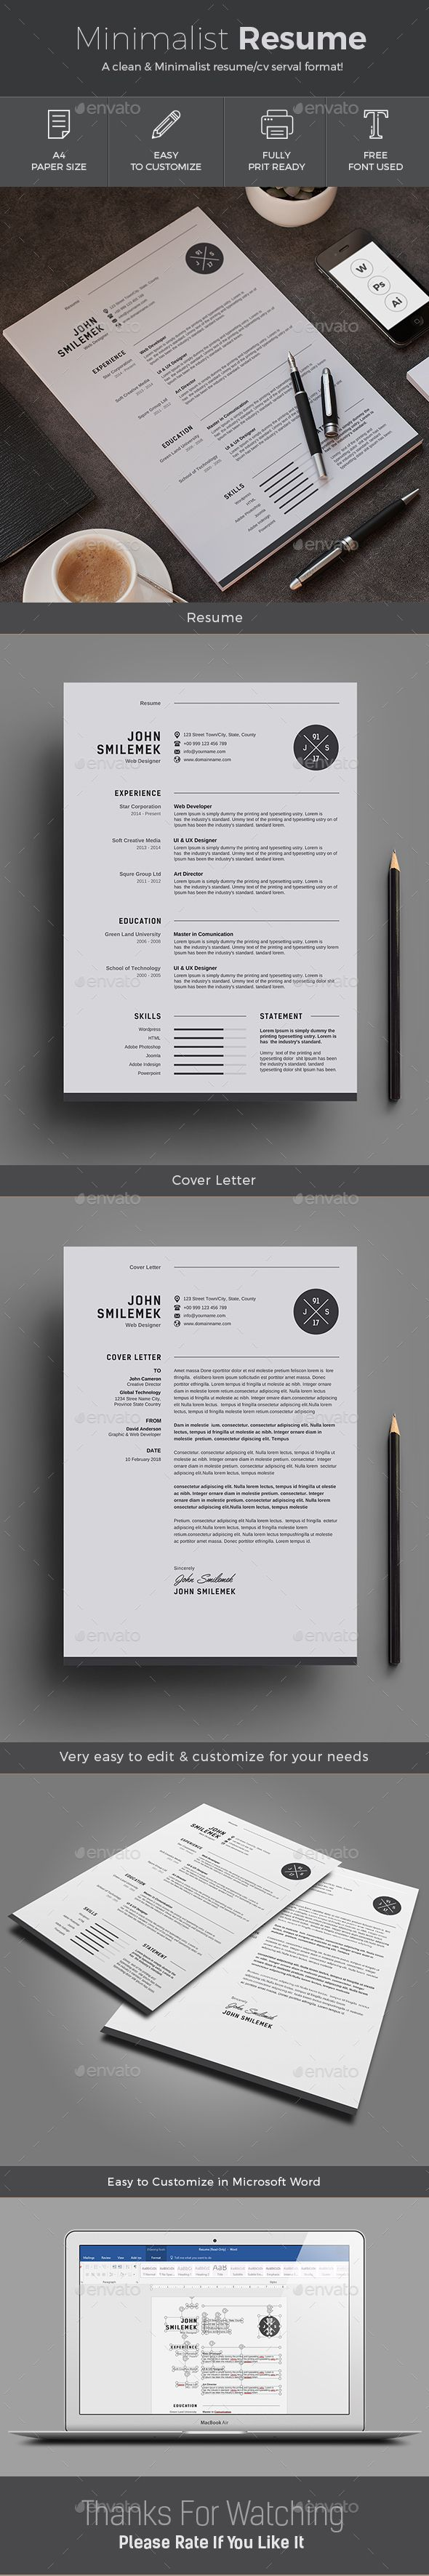 Cna Resume With No Experience Word Resume  Creative Resume Professional Resume Examples And Cv Template Order Selector Resume with Make A Resume Online Free Excel Resume  Resumes Stationery Download Here Httpsgraphicrivernet Digital Strategist Resume Pdf